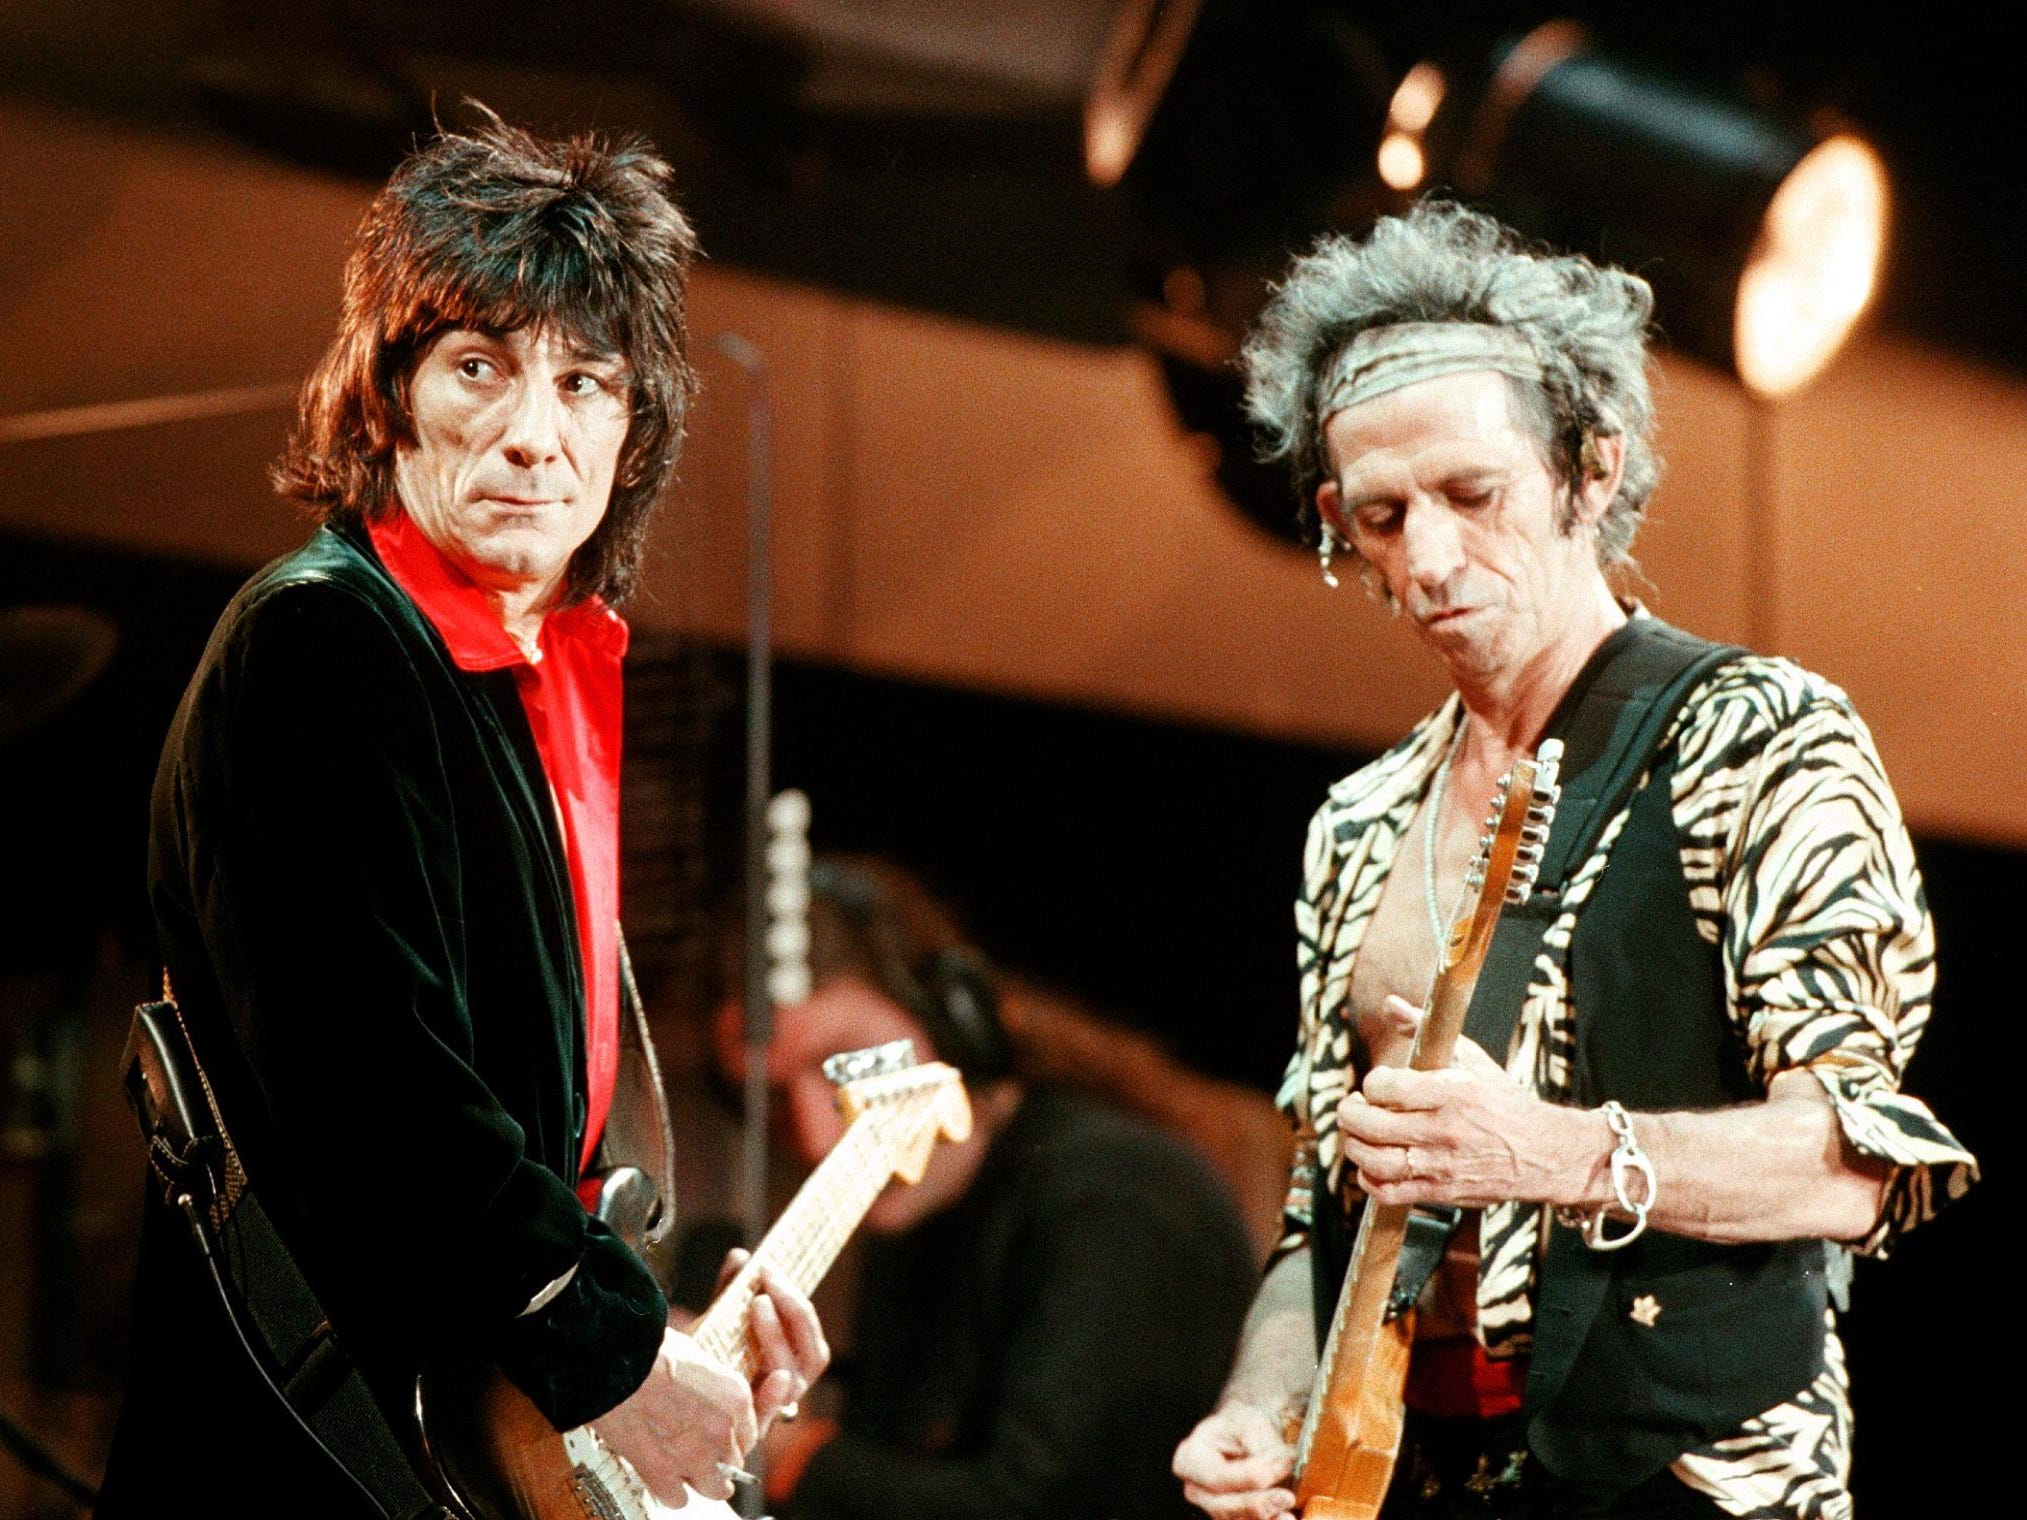 Ronnie Wood and Keith Richards perform at the Olympic Stadium in Athens, Greece.